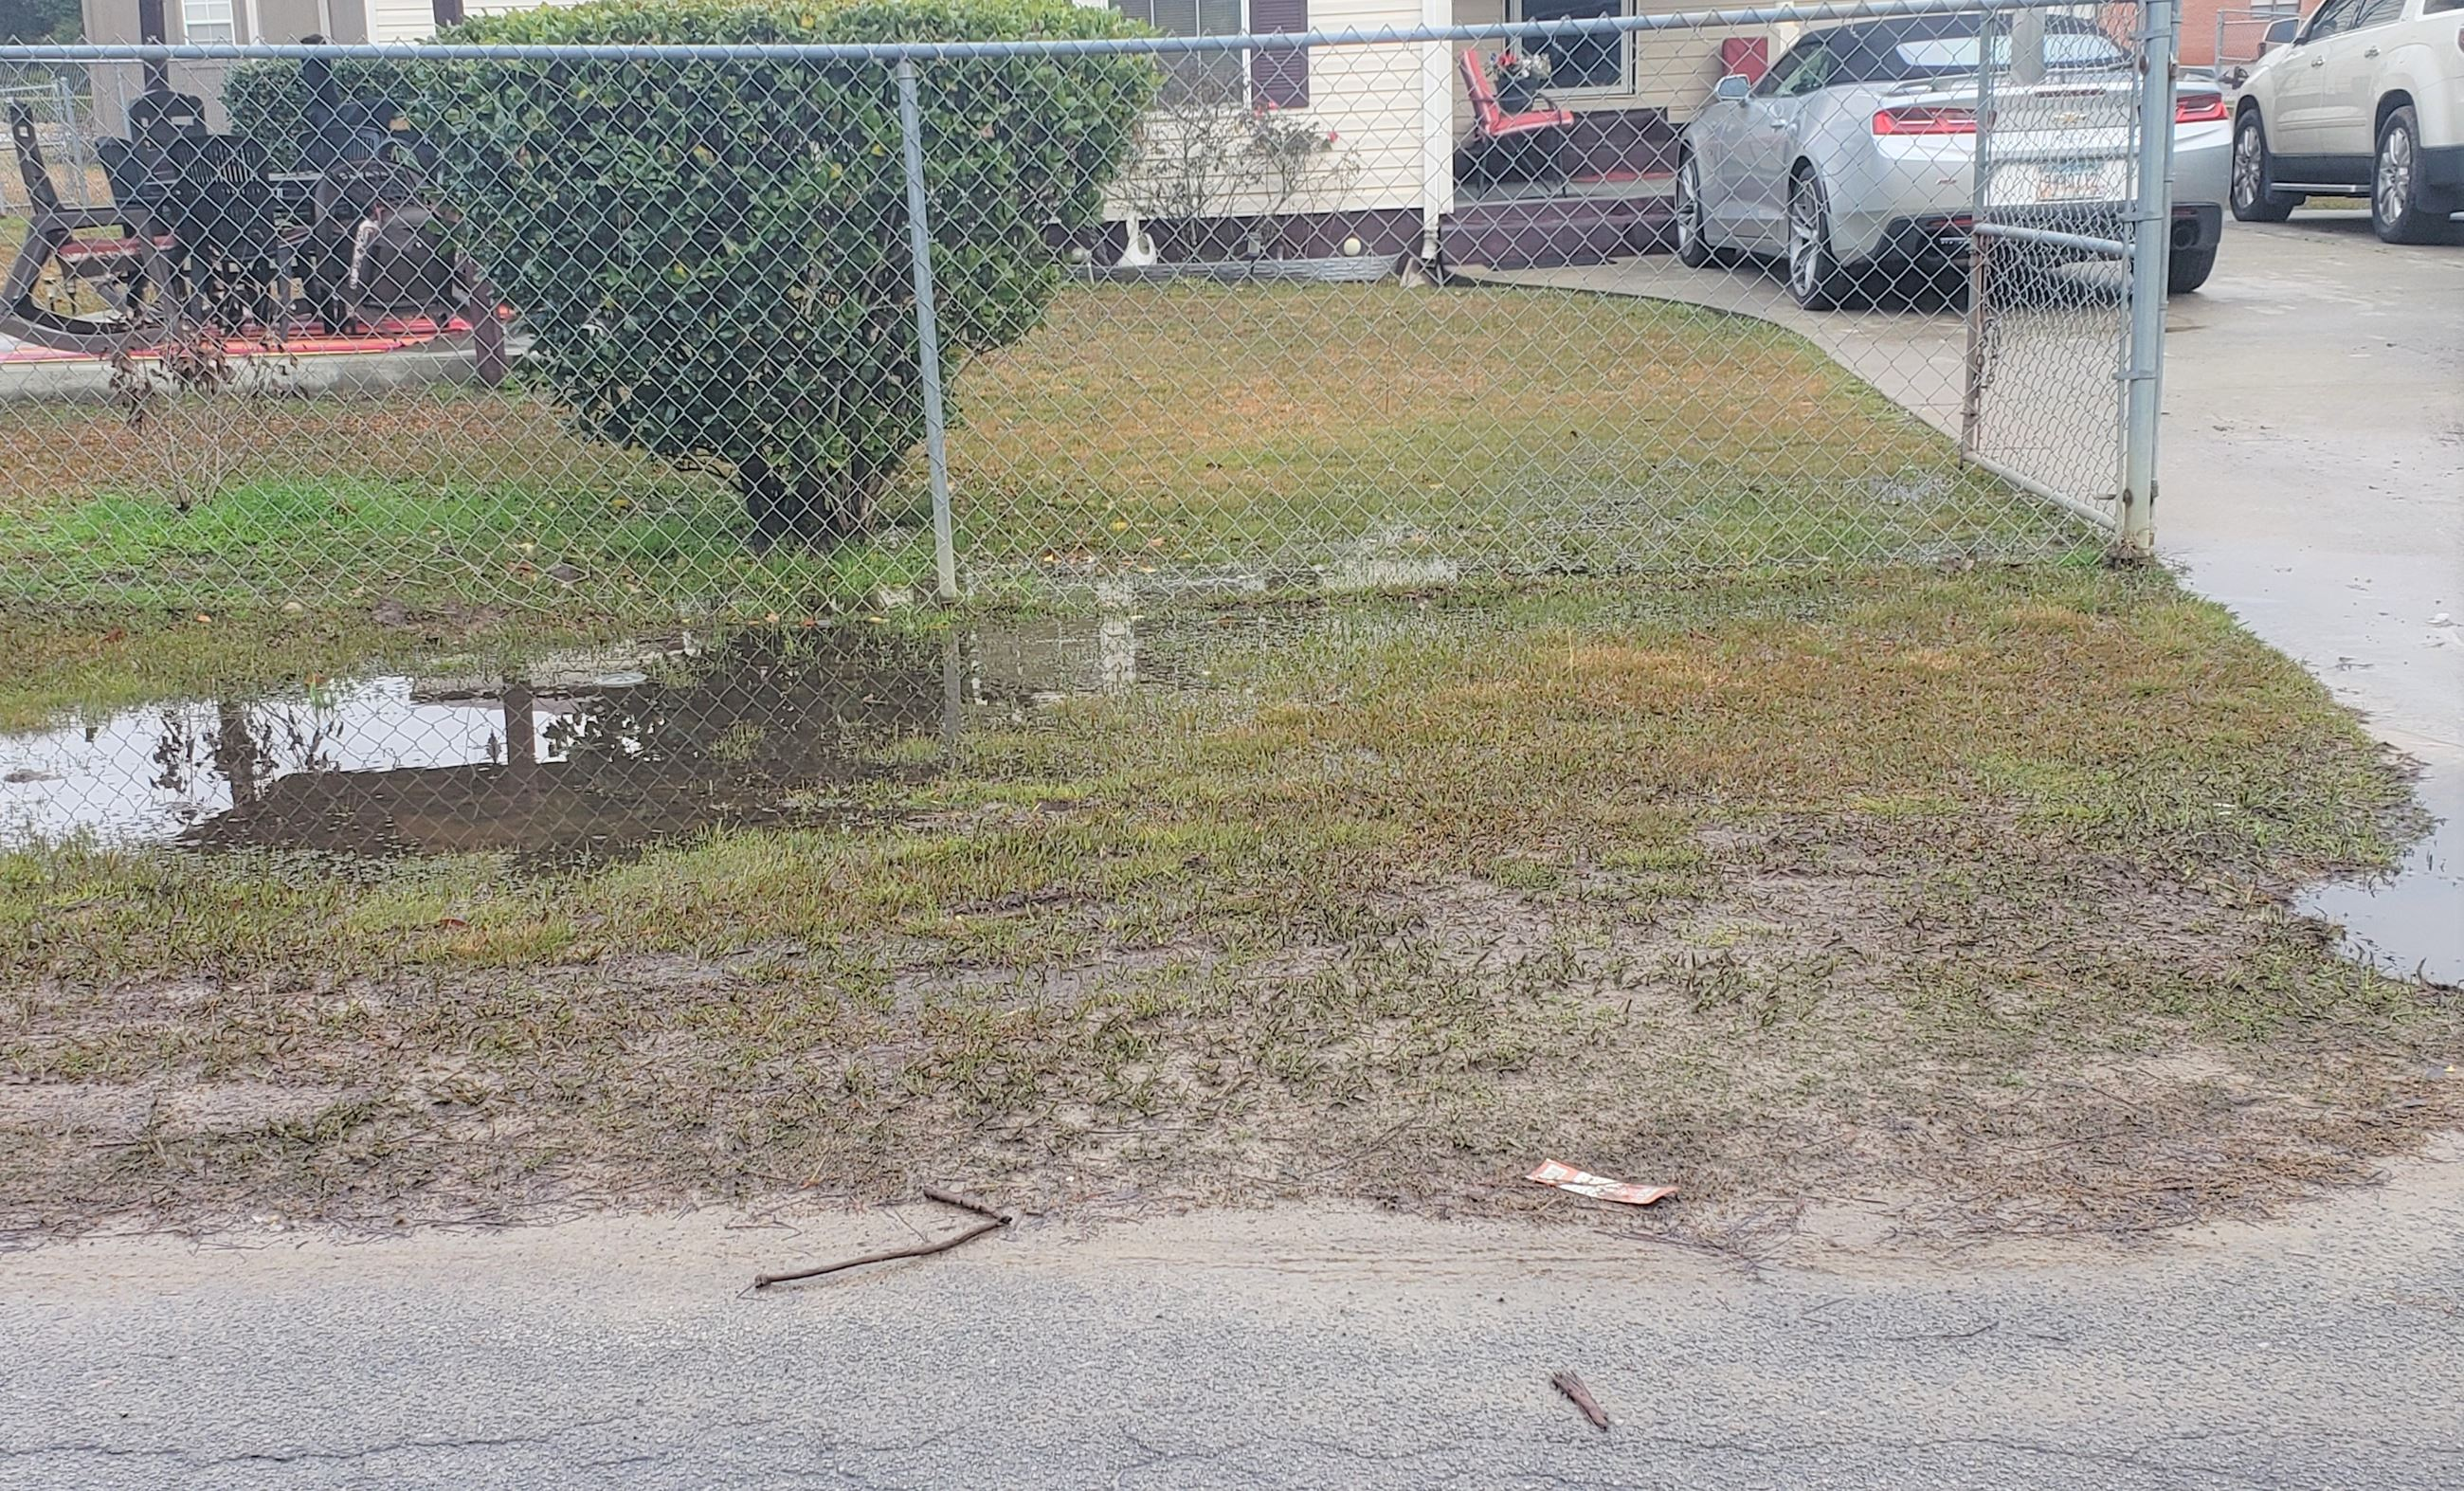 Image of drainage issues on Fleetwood Circle